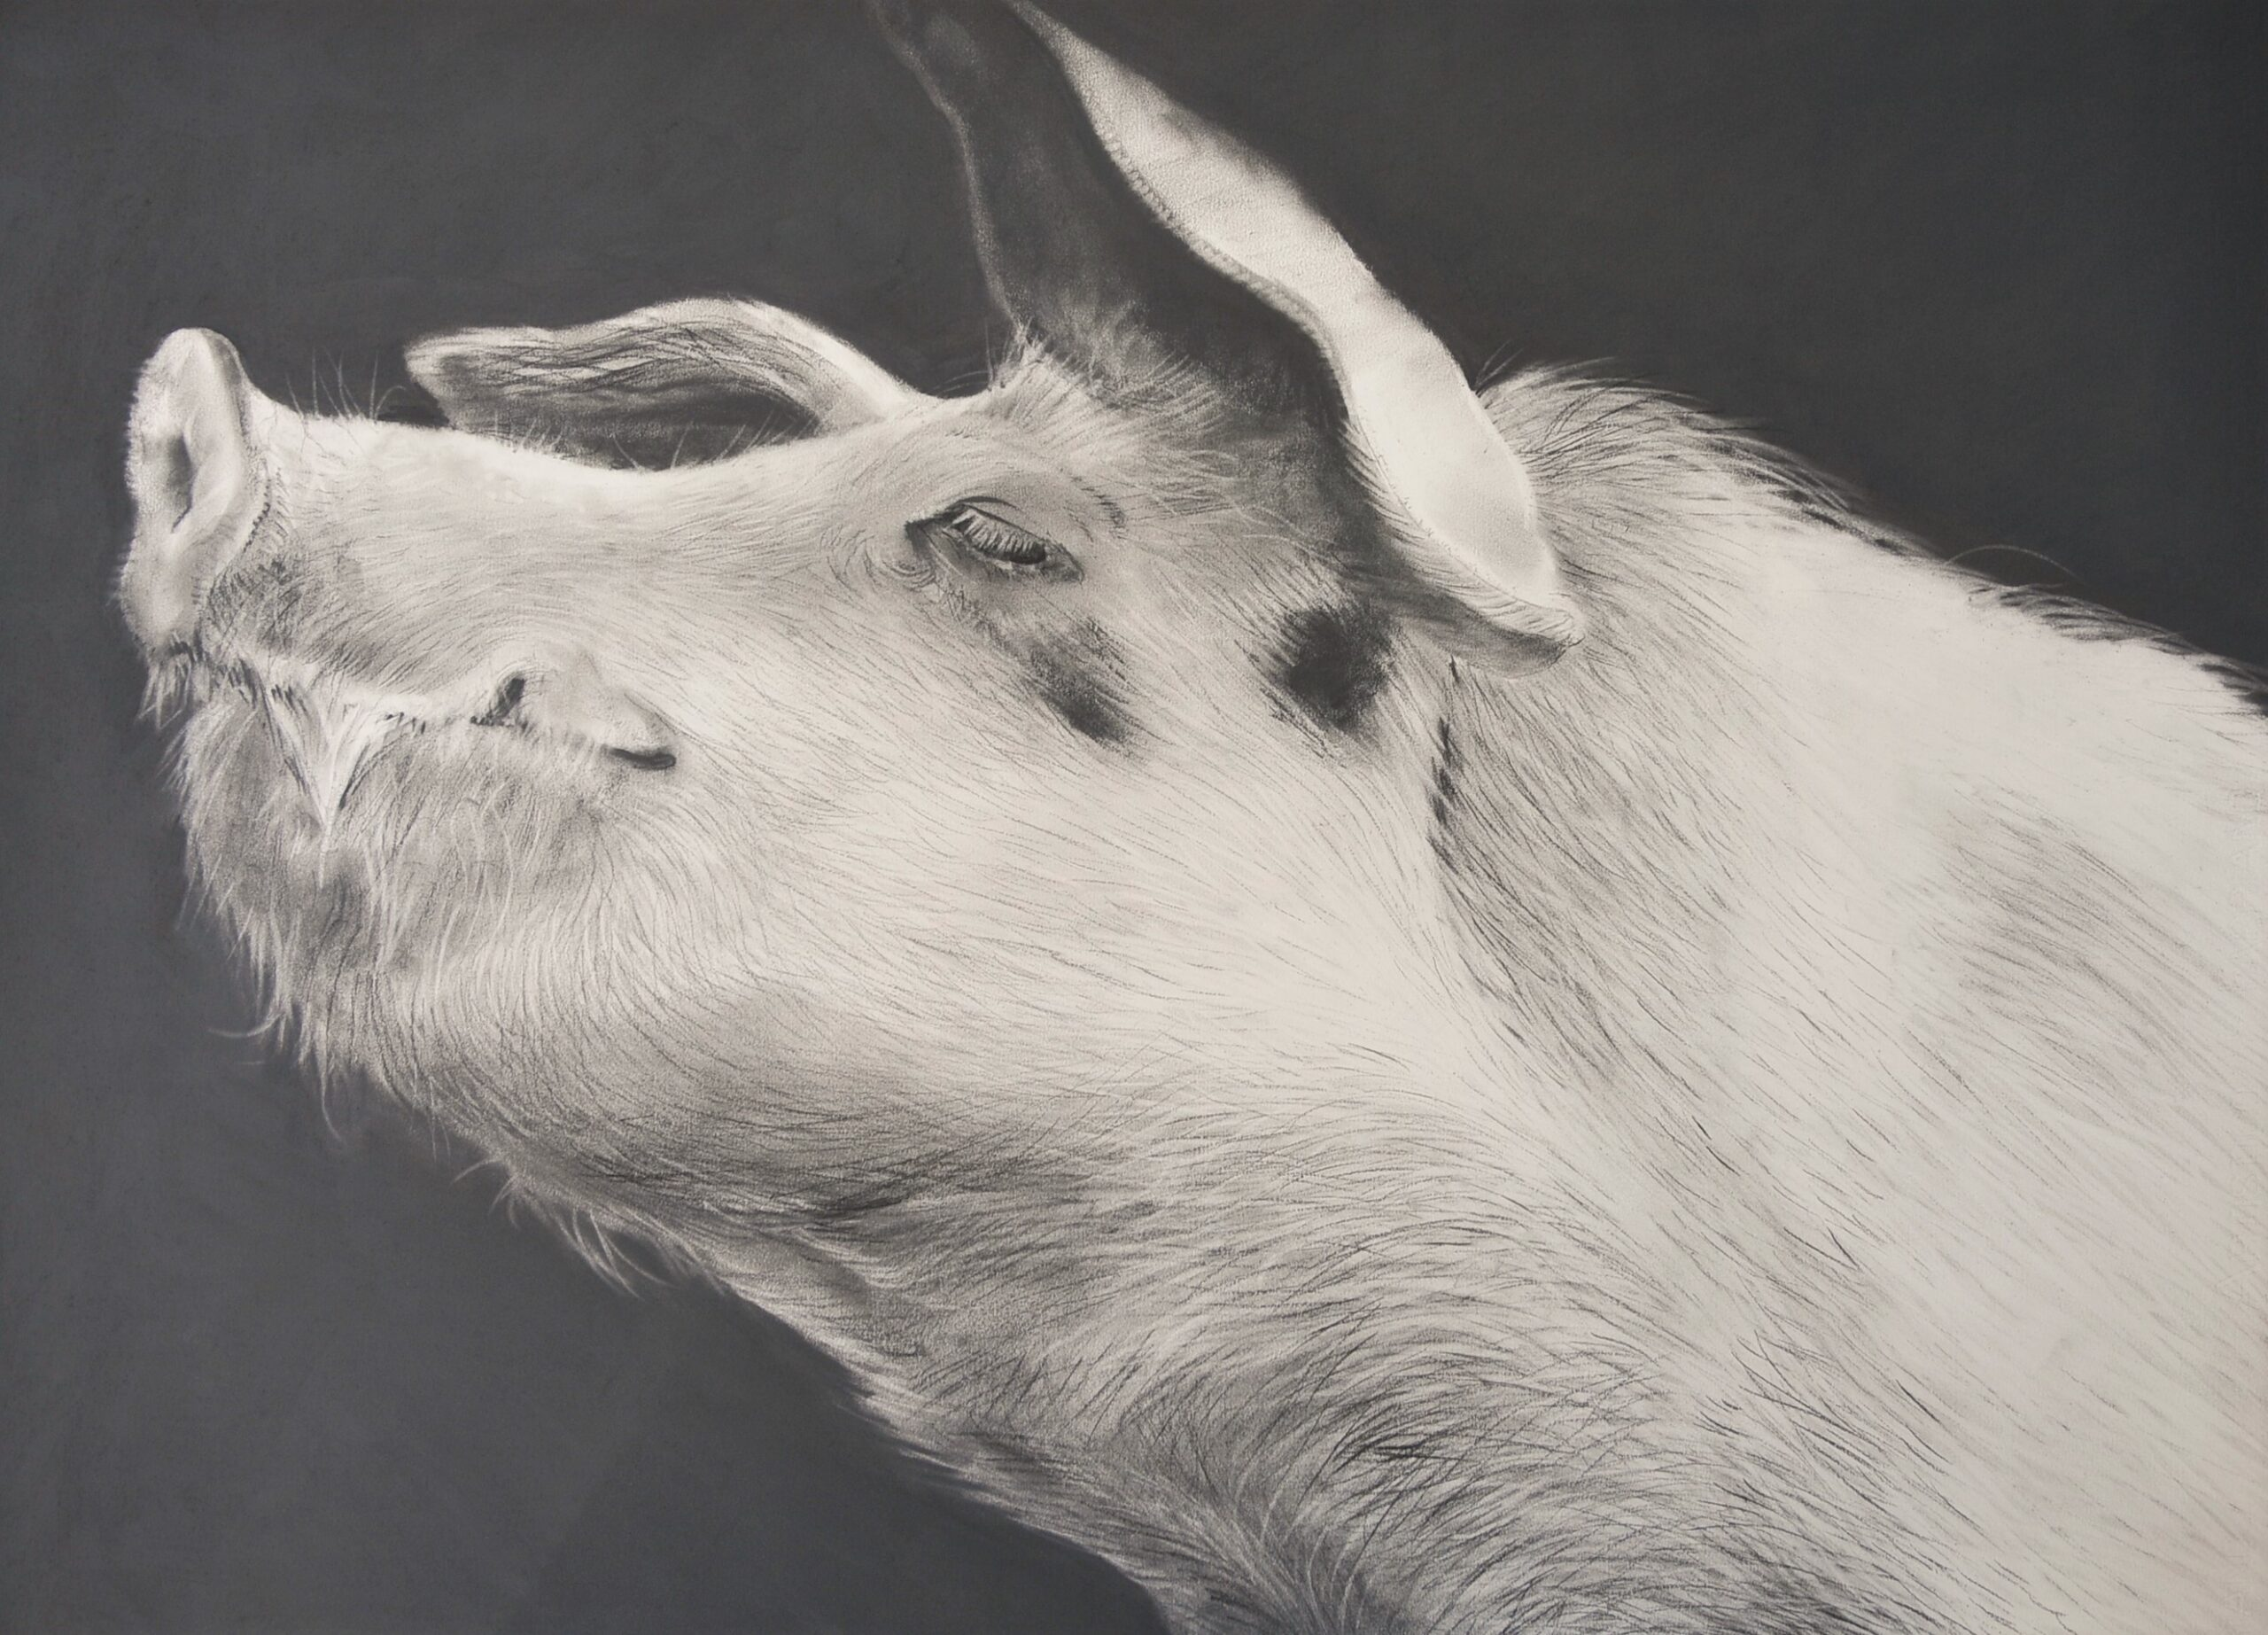 Charcoal drawing of a pig